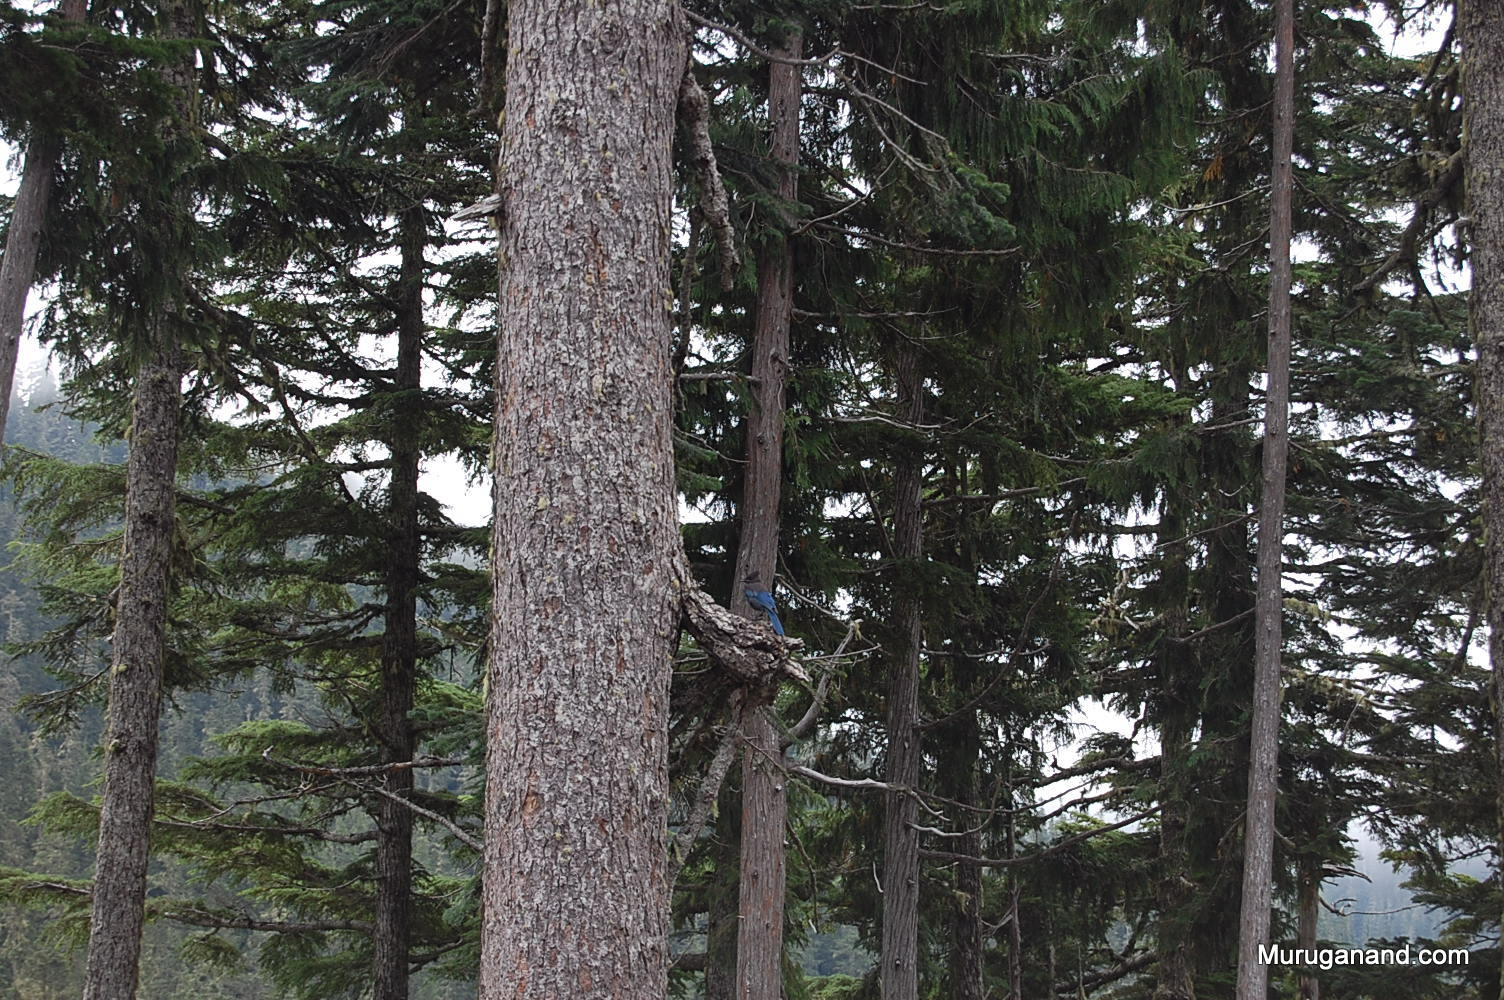 Steller's Jay and others like rare Northern spotted owl inhabit this park